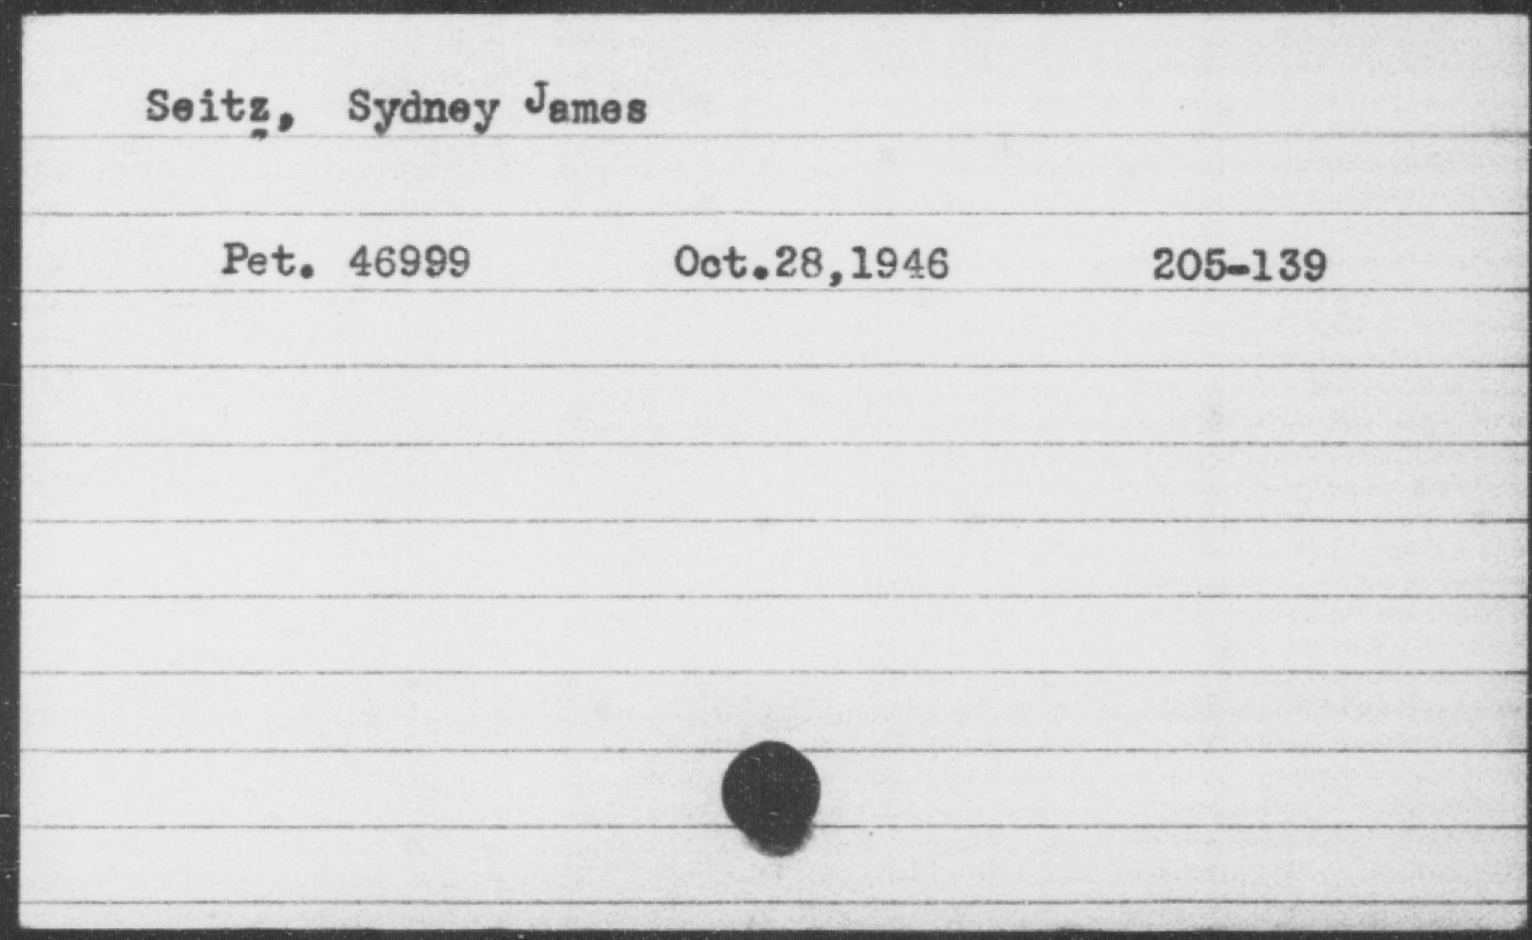 Seitz, Sydney James, Year: 1946